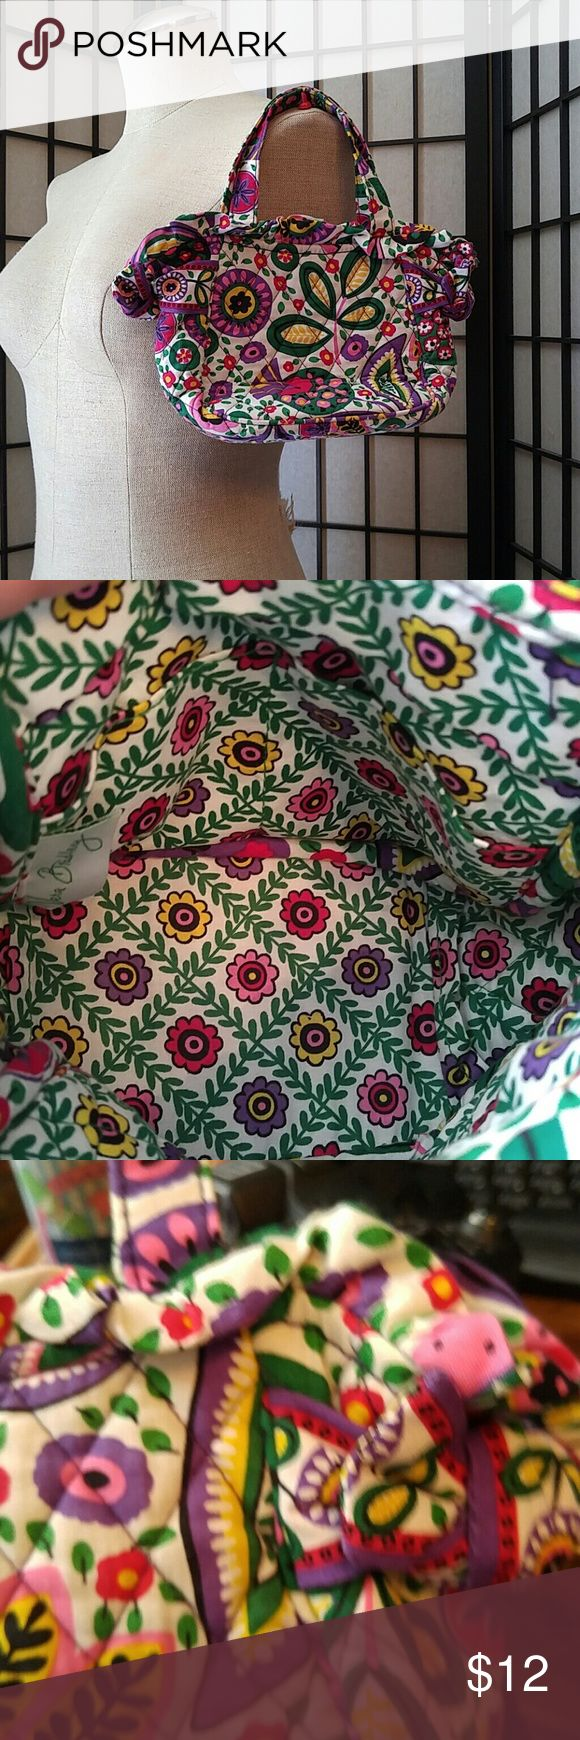 Child Size Vera Bradley Tote Bag Pocket Book Vera Bradley Tote Bag/Pocket Book. Child Size.  Magnetic Closure. In Like New shape, no rips, stains or tears. Vera Bradley Accessories Bags